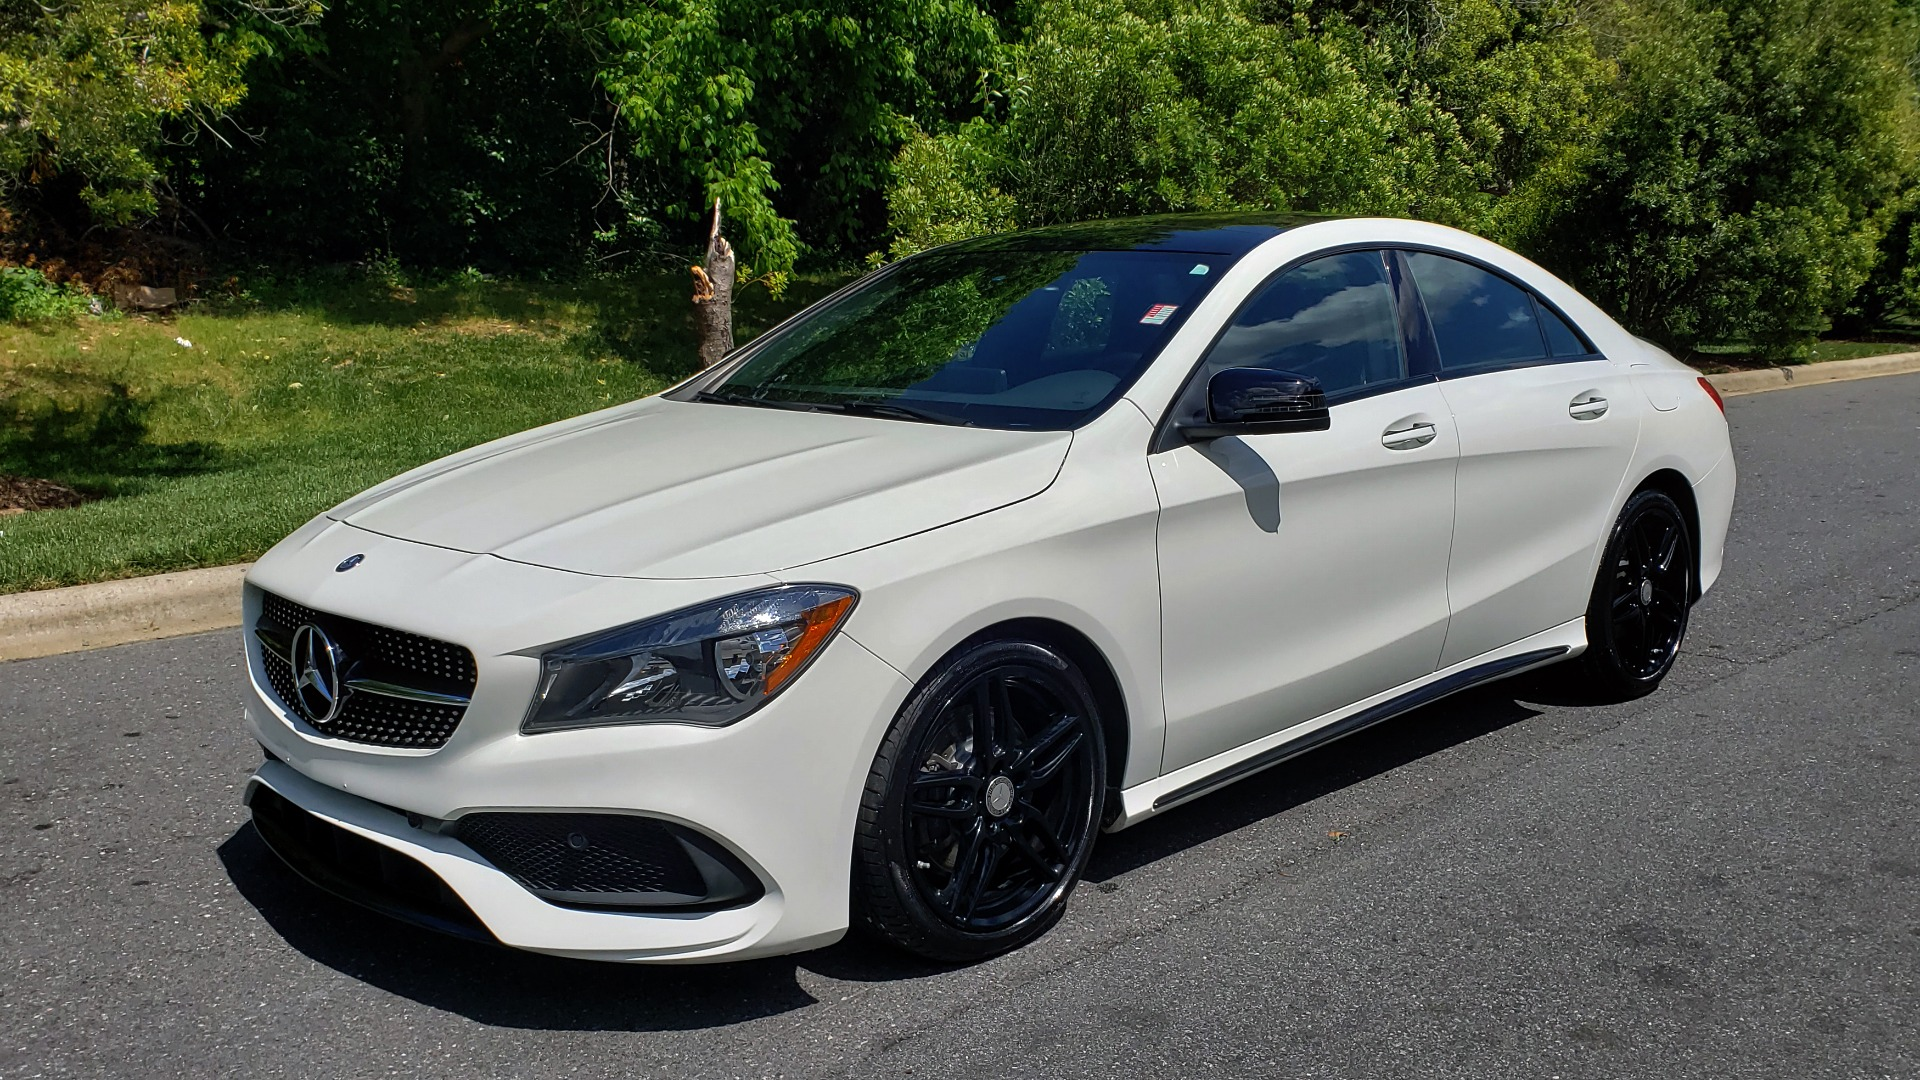 Used 2017 Mercedes-Benz CLA 250 4MATIC / SPORT / PREMIUM / MULTI MEDIA / NIGHT PKG / PANO-ROOF for sale Sold at Formula Imports in Charlotte NC 28227 1